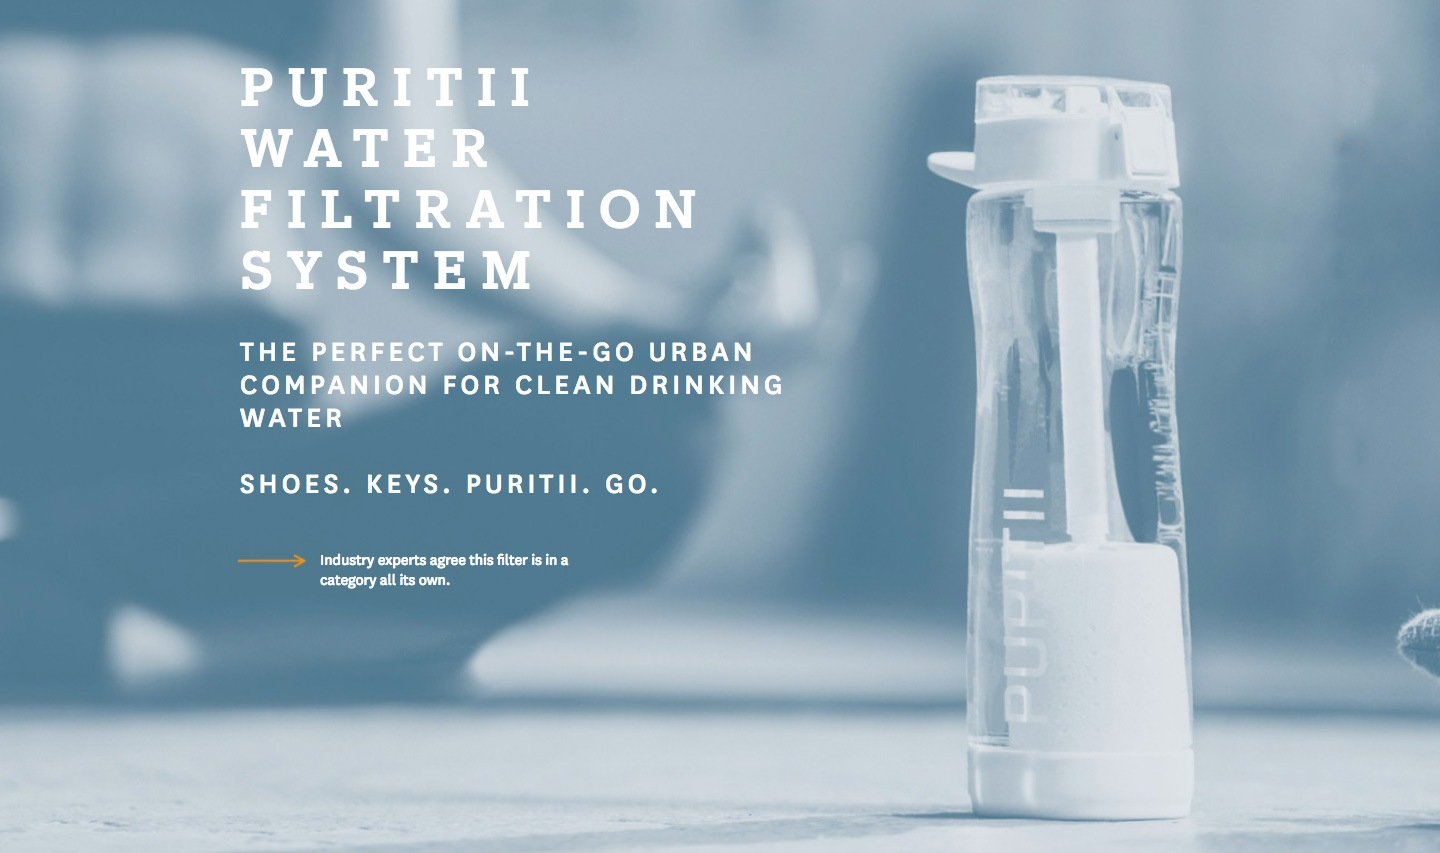 PURITII WATER FILTRATION SYSTEM 2017